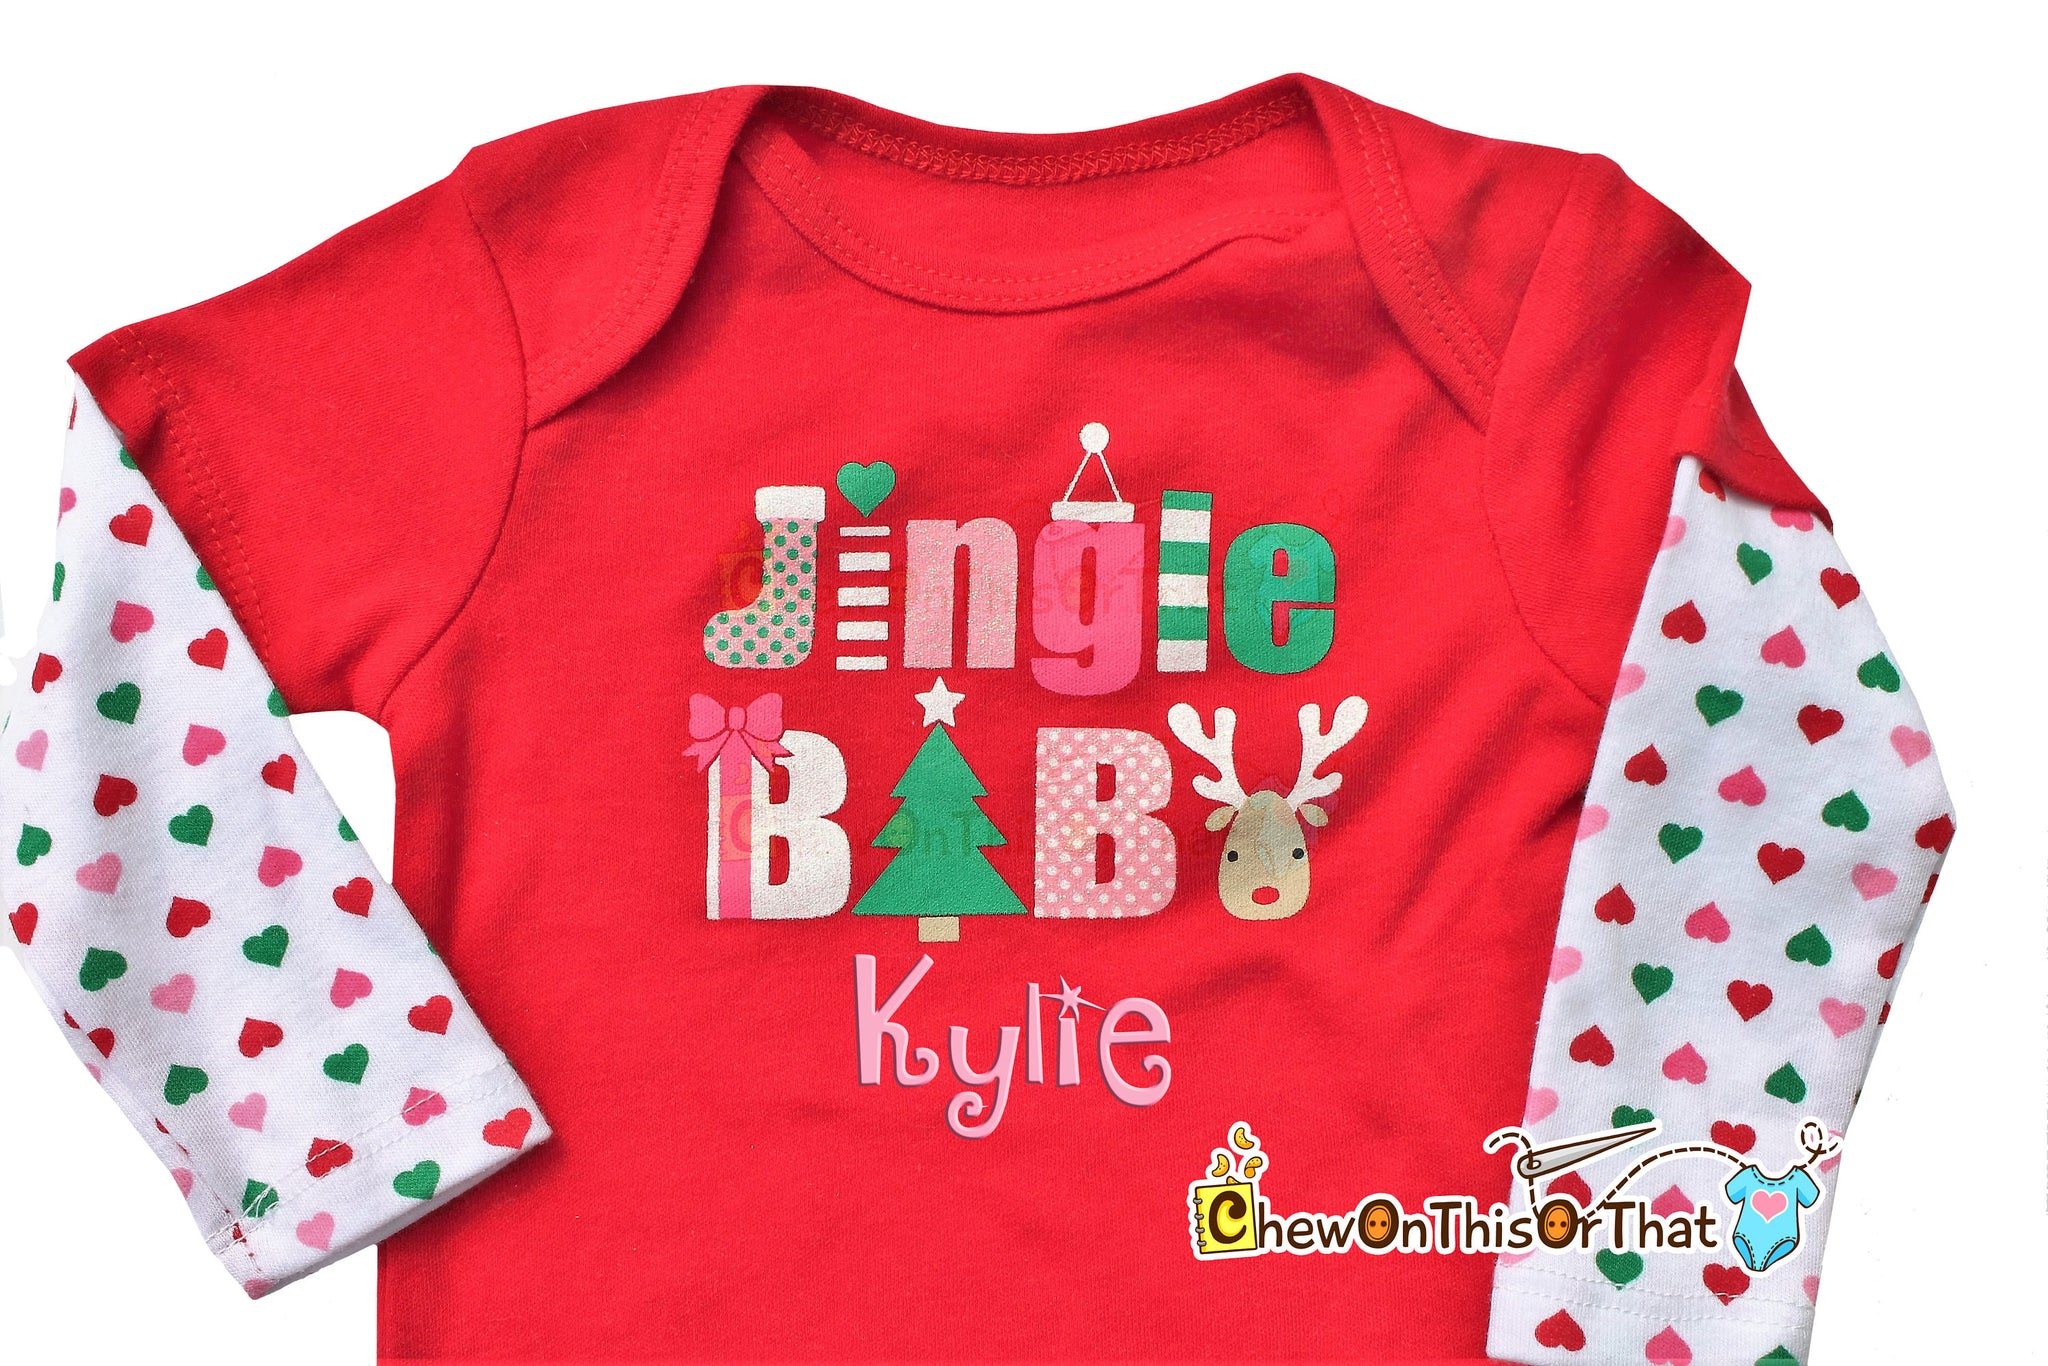 688309932ec1 Jingle Baby Red and White Christmas Onesie Personalized with Baby s ...